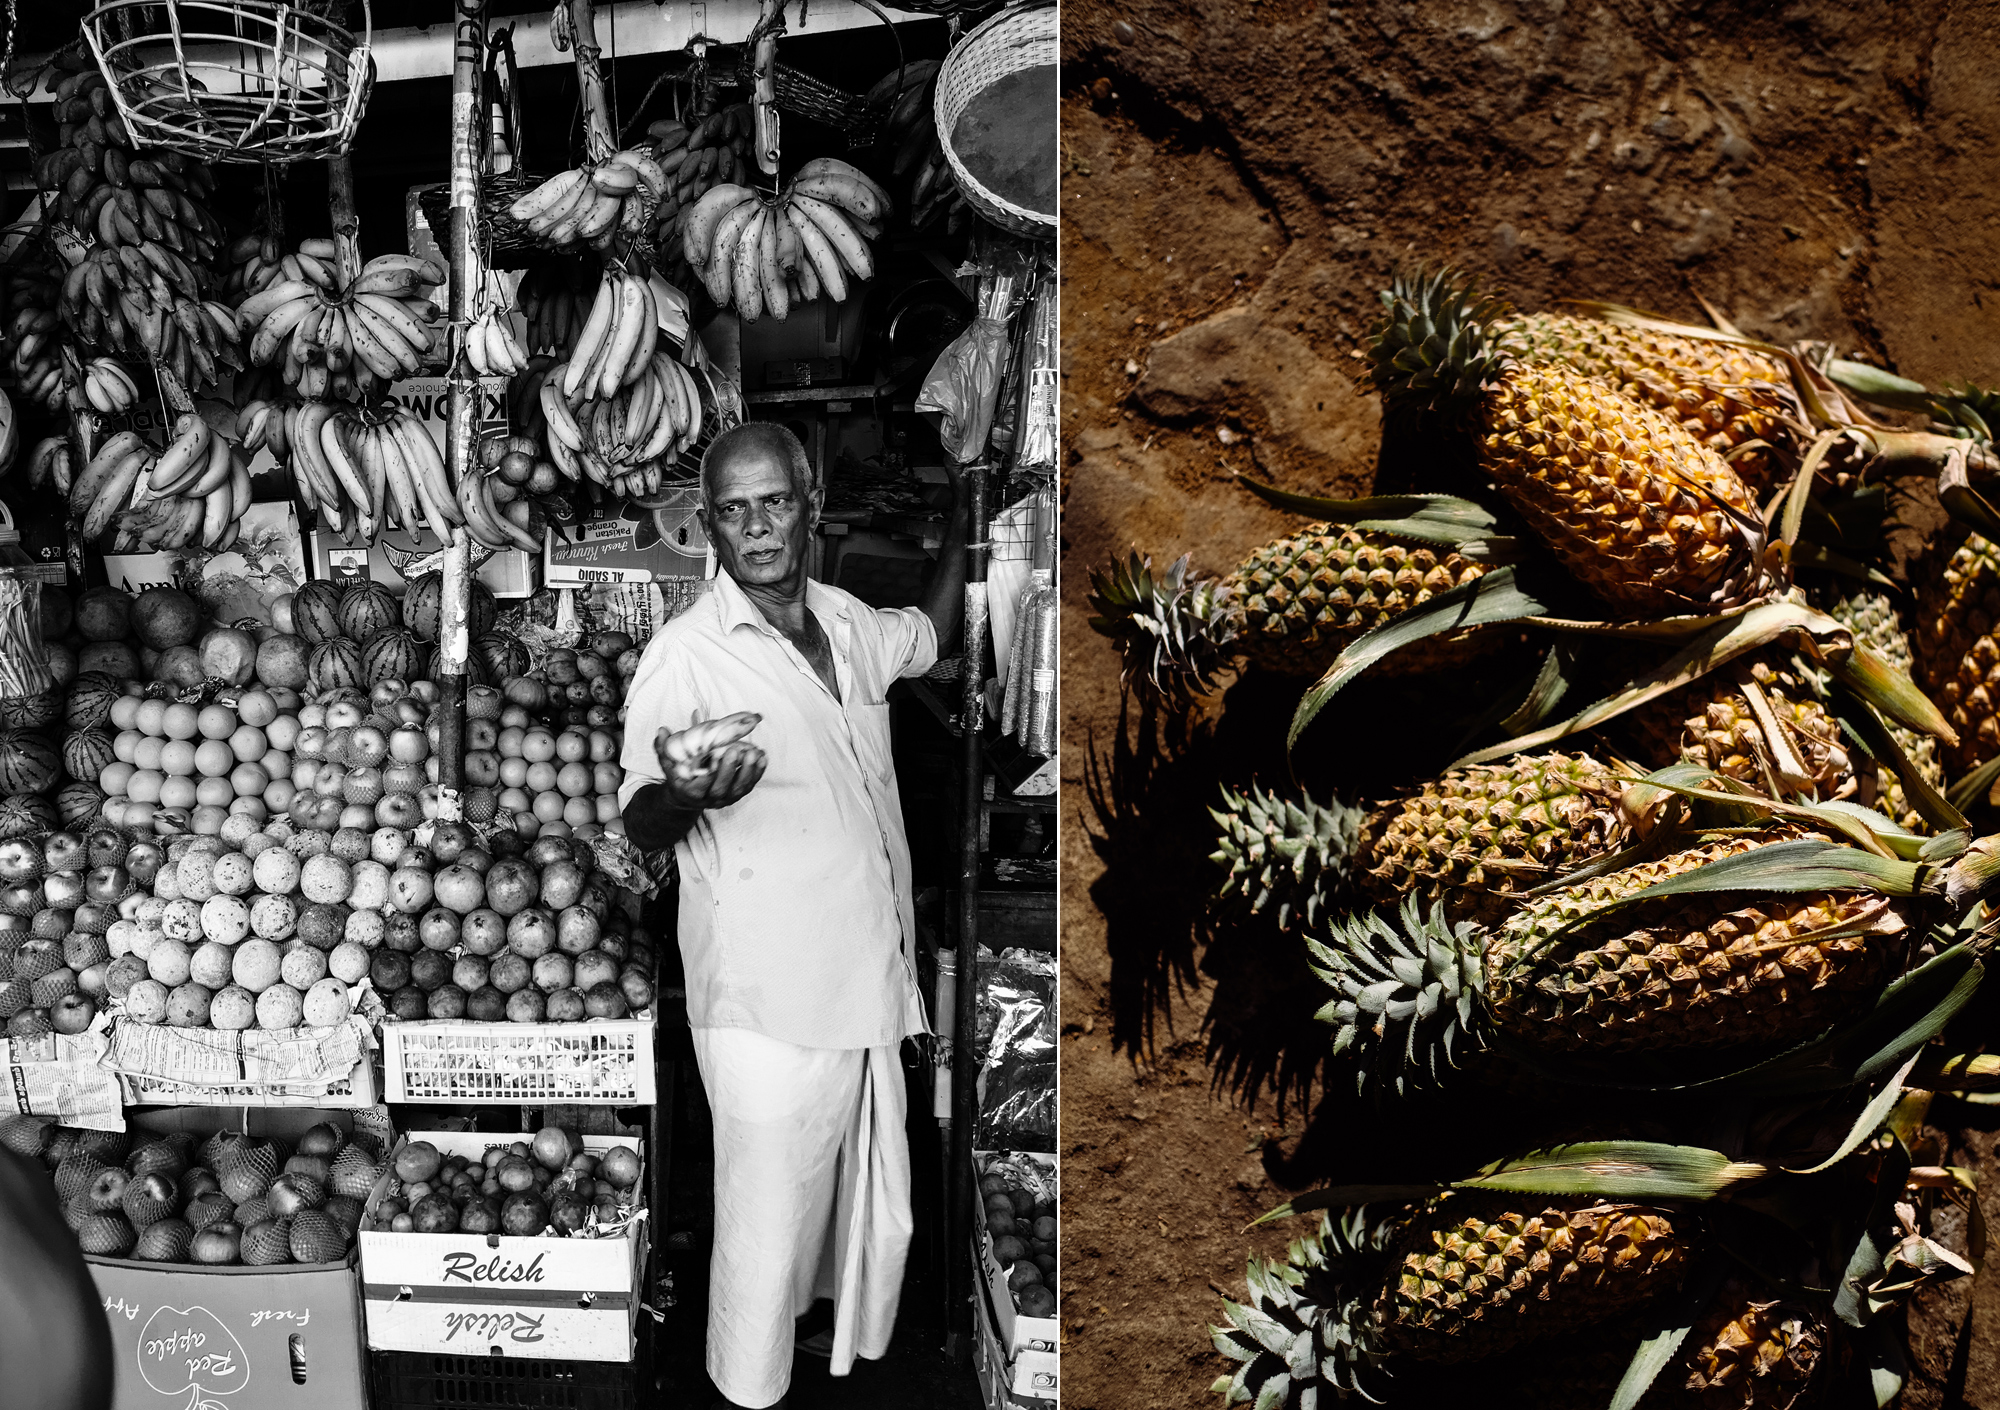 Kandy Market, Pineapples. Sri Lanka - Hermione McCosh Photography